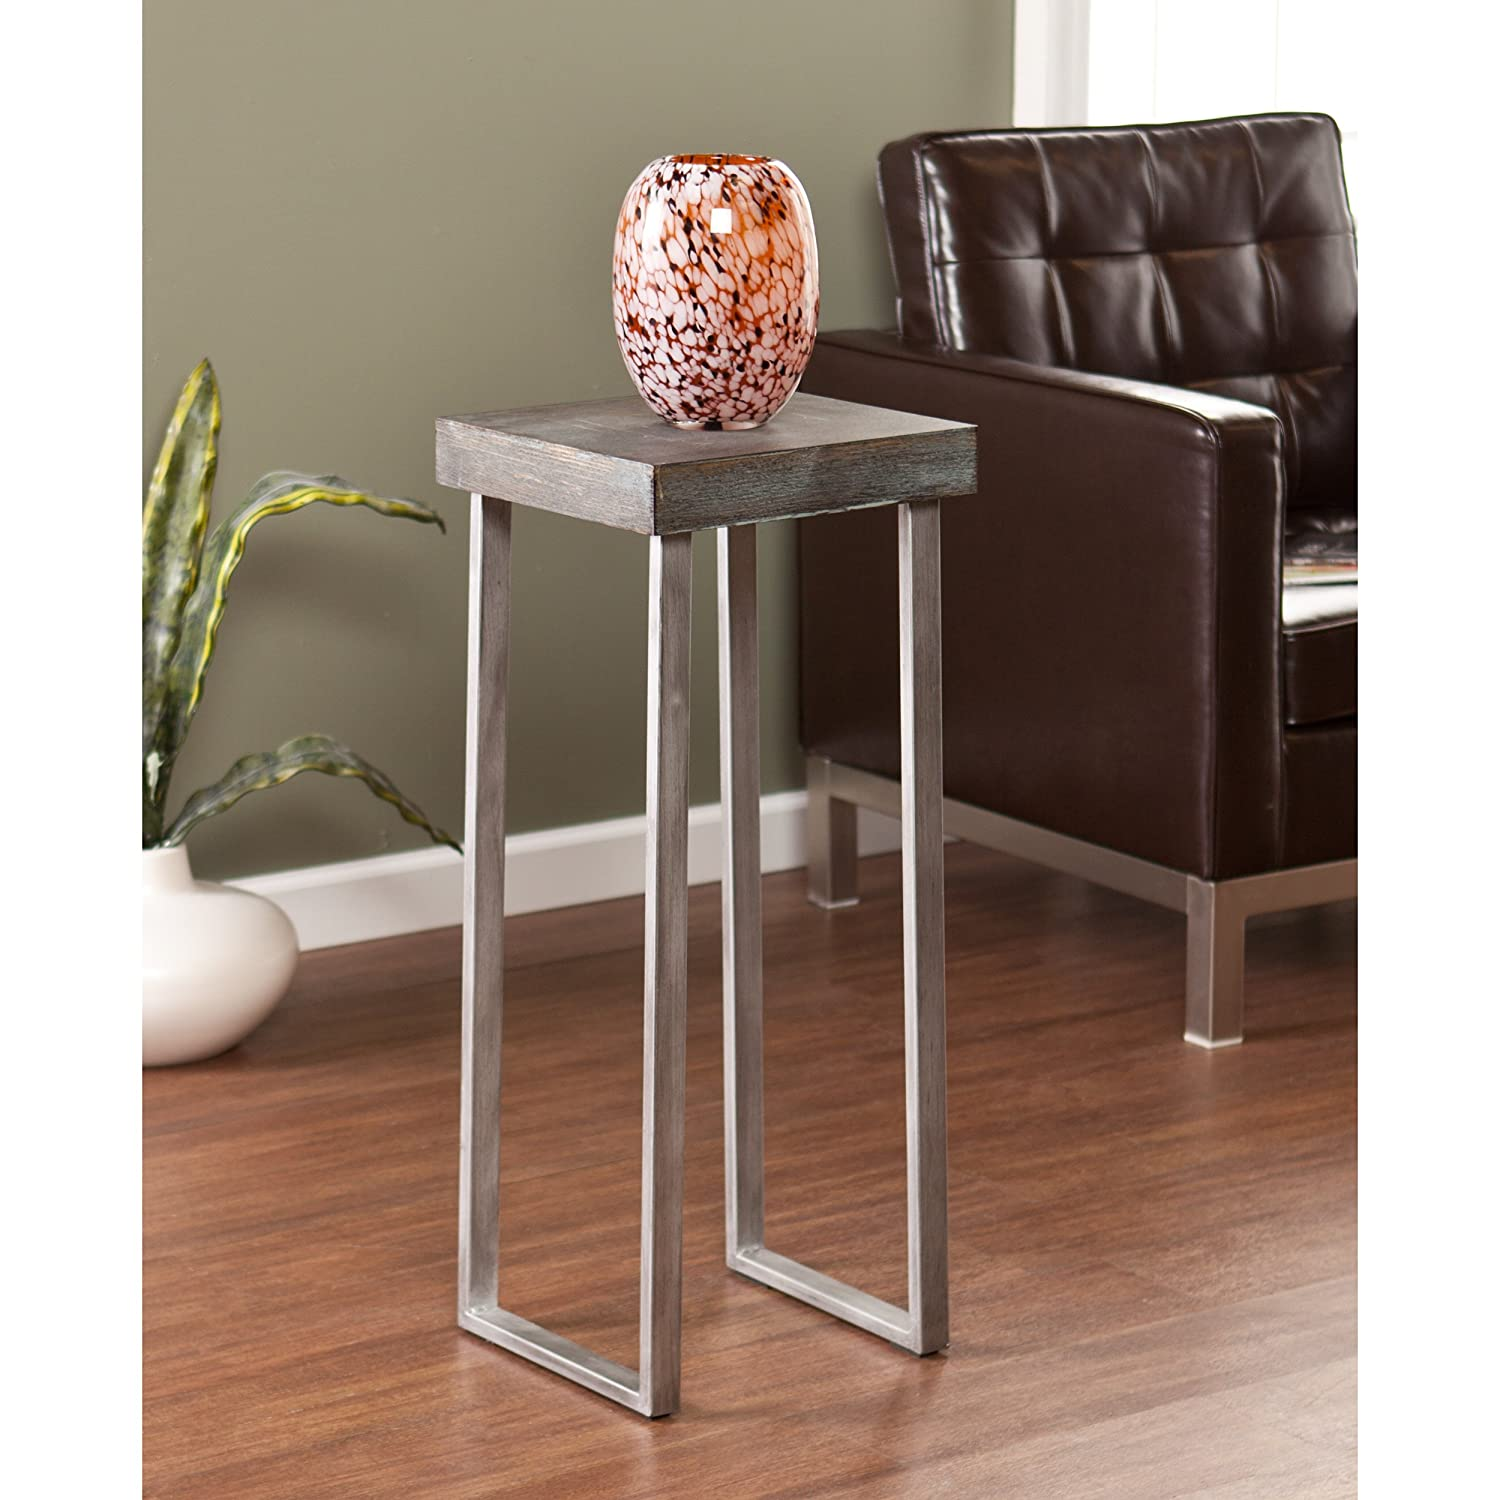 Southern Enterprises Nolan Pedestal Accent Table AMZ4404